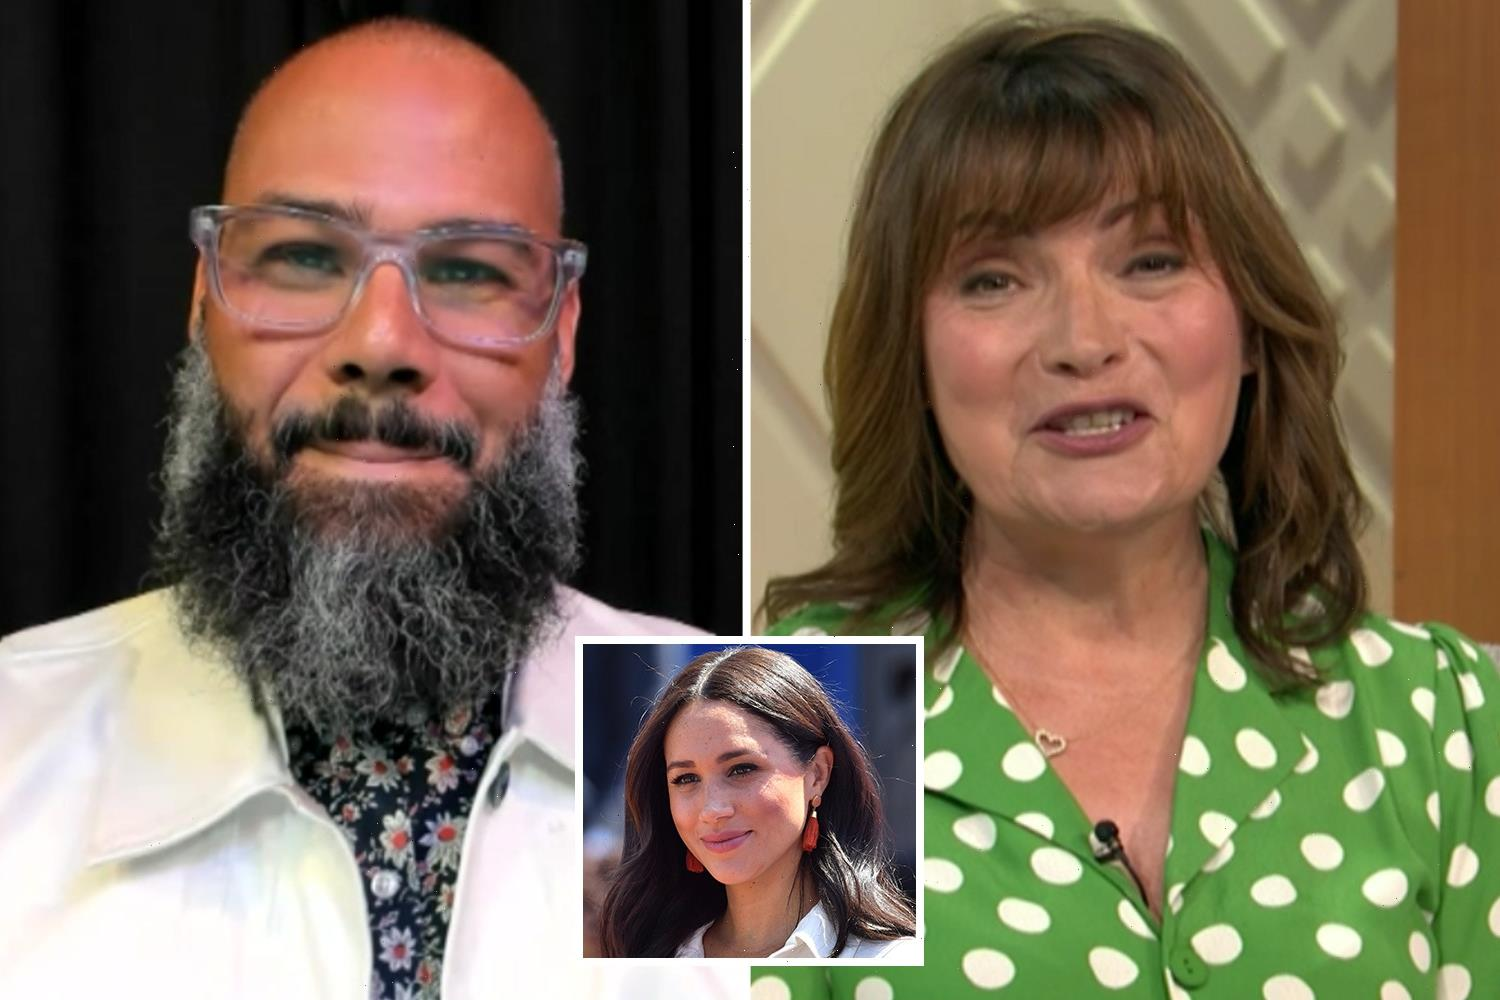 Meghan Markle's first boyfriend is cut off TWICE in live TV blunder as Lorraine apologises for technical issues